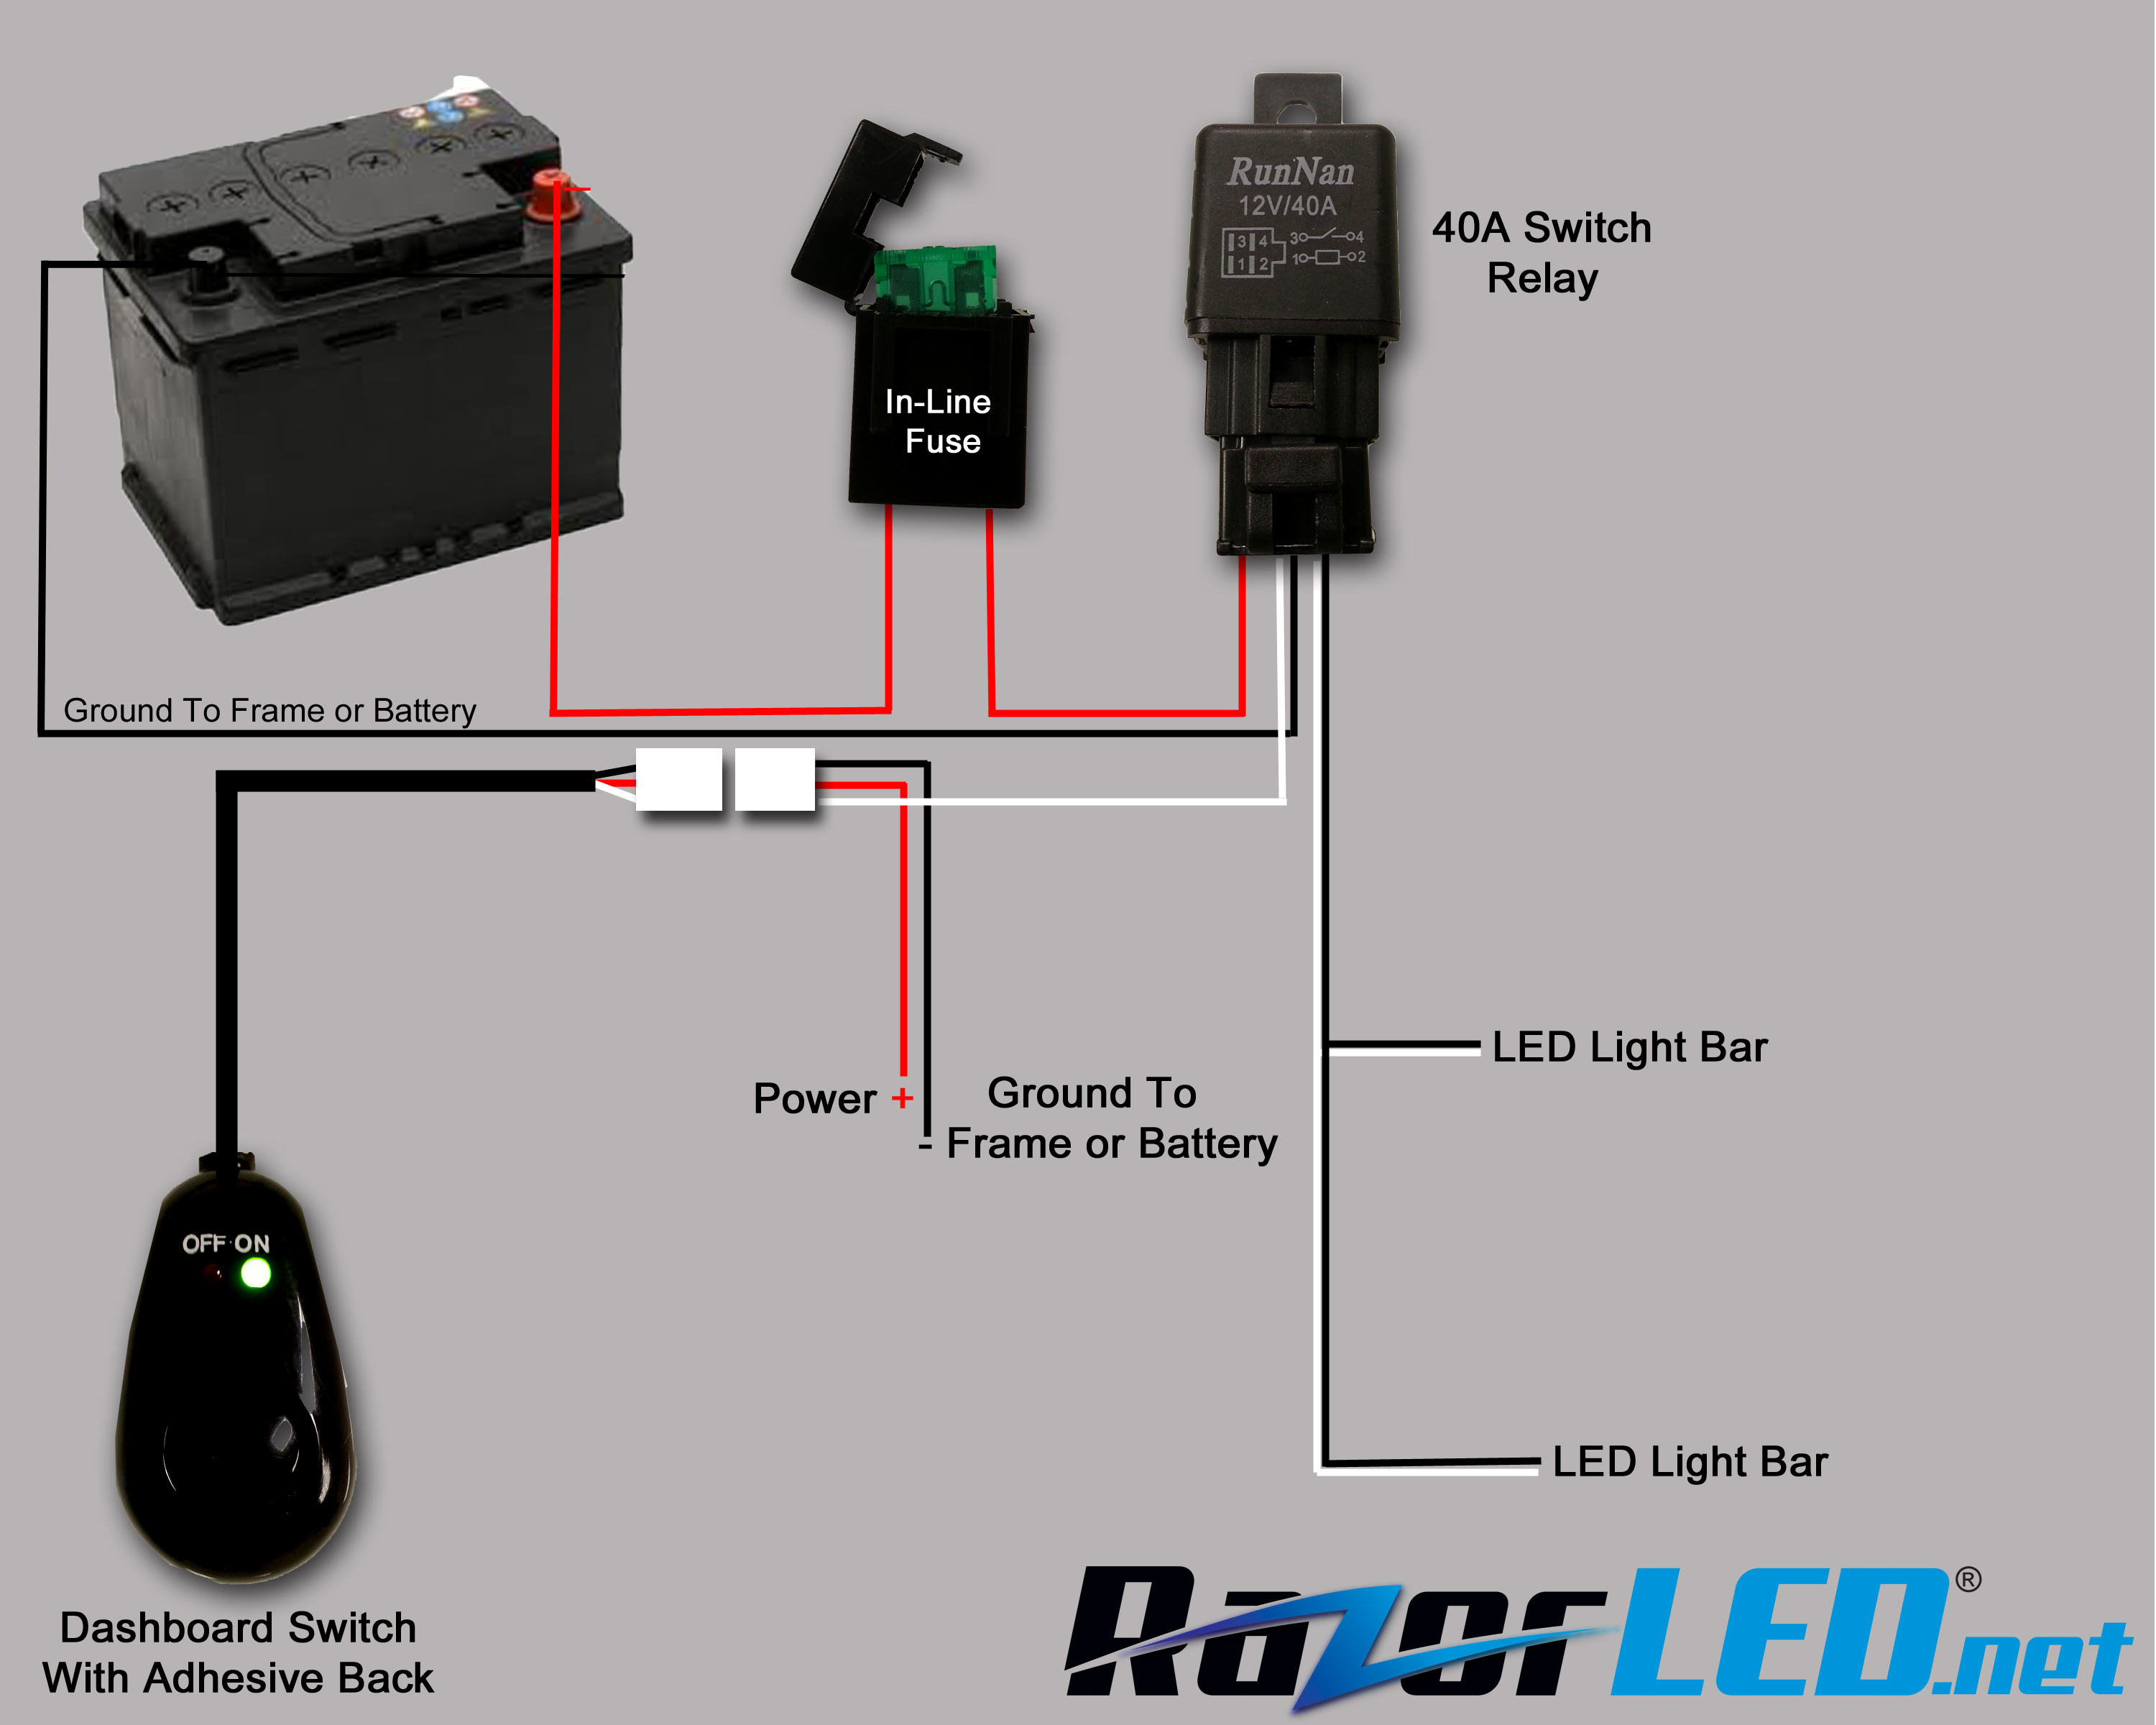 Wiring Up Led Light Bar Diagram | Wiring Diagram - Led Light Bar Wiring Diagram